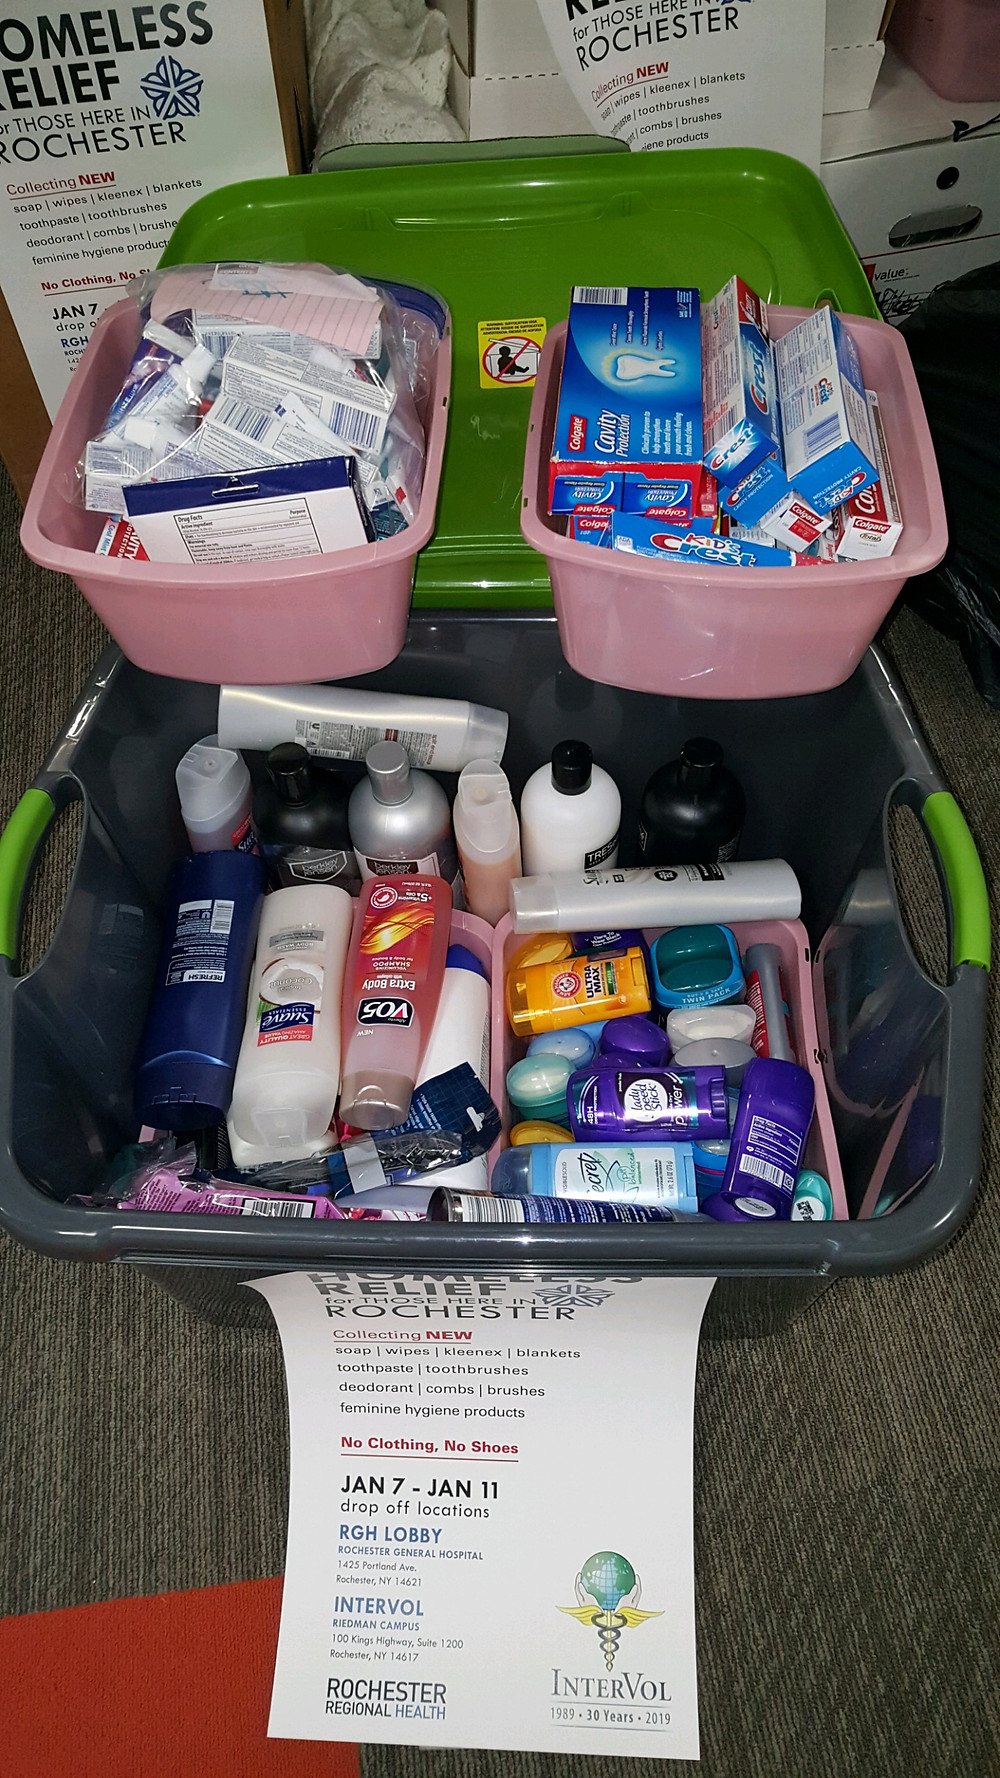 Homeless Relief Donations